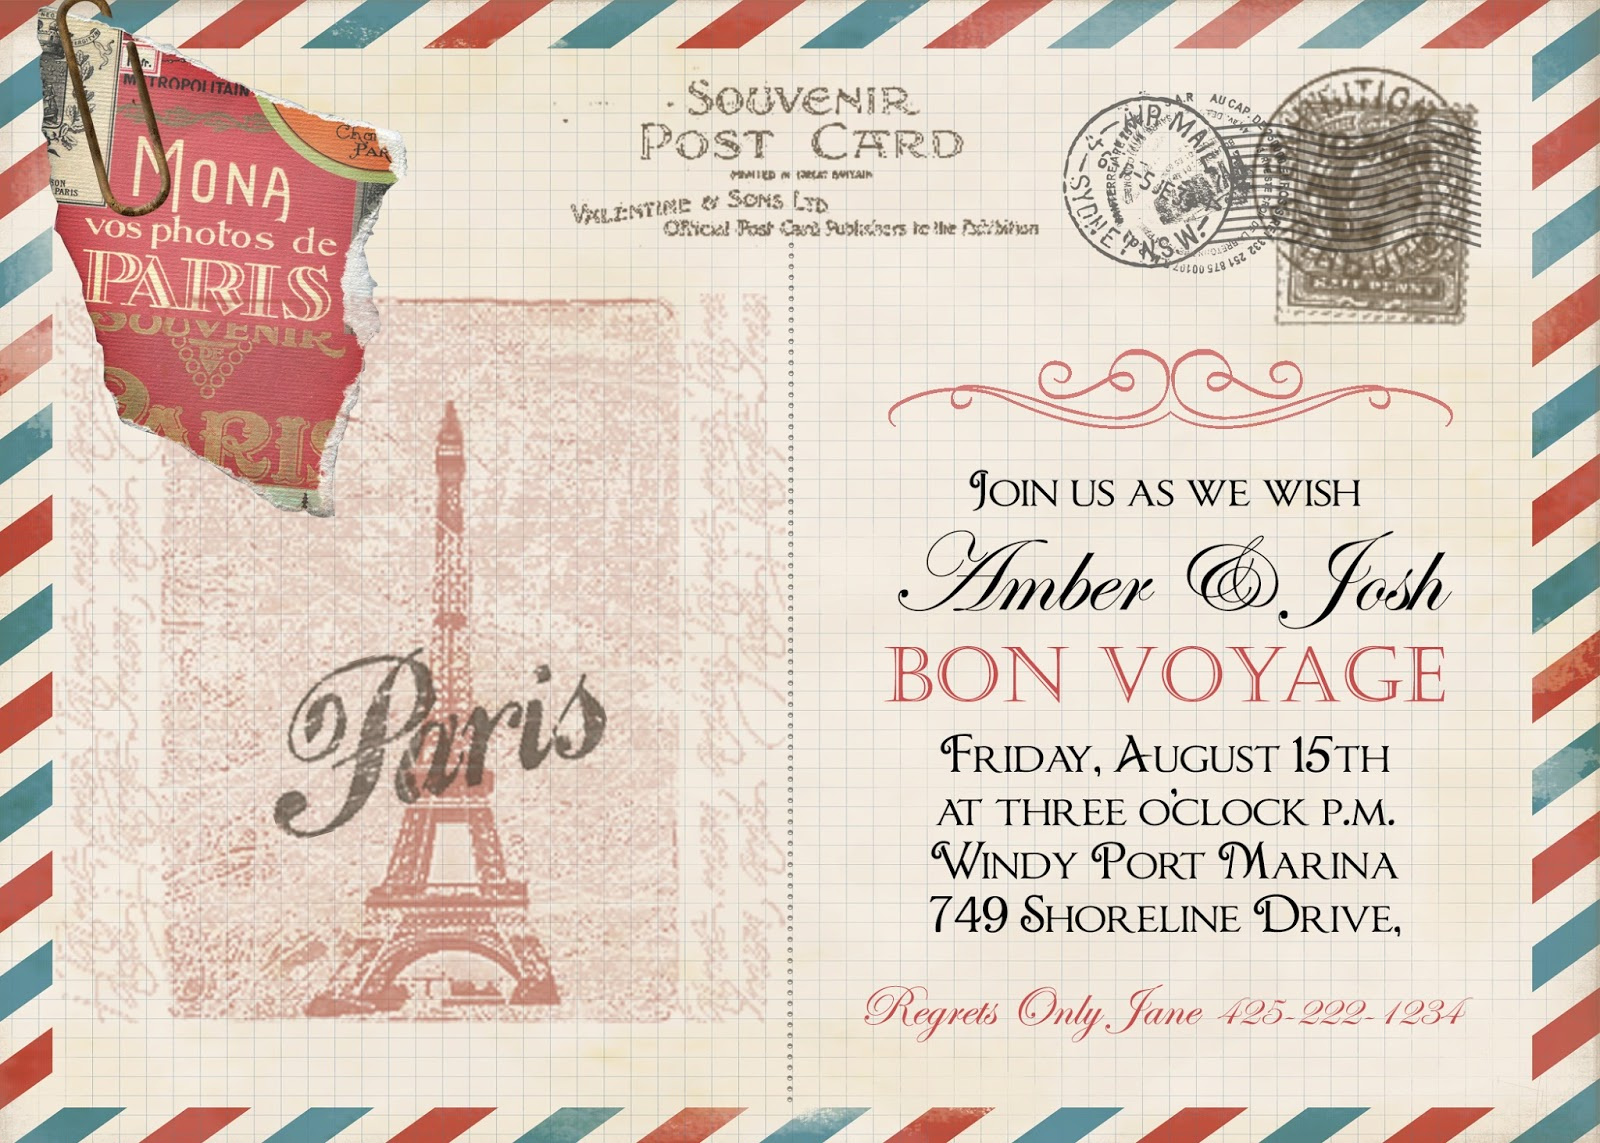 Sugar and spice invitations bon voyage vintage post card honeymoon bon voyage vintage post card honeymoon invitation new york sugar and spice invitations stopboris Image collections